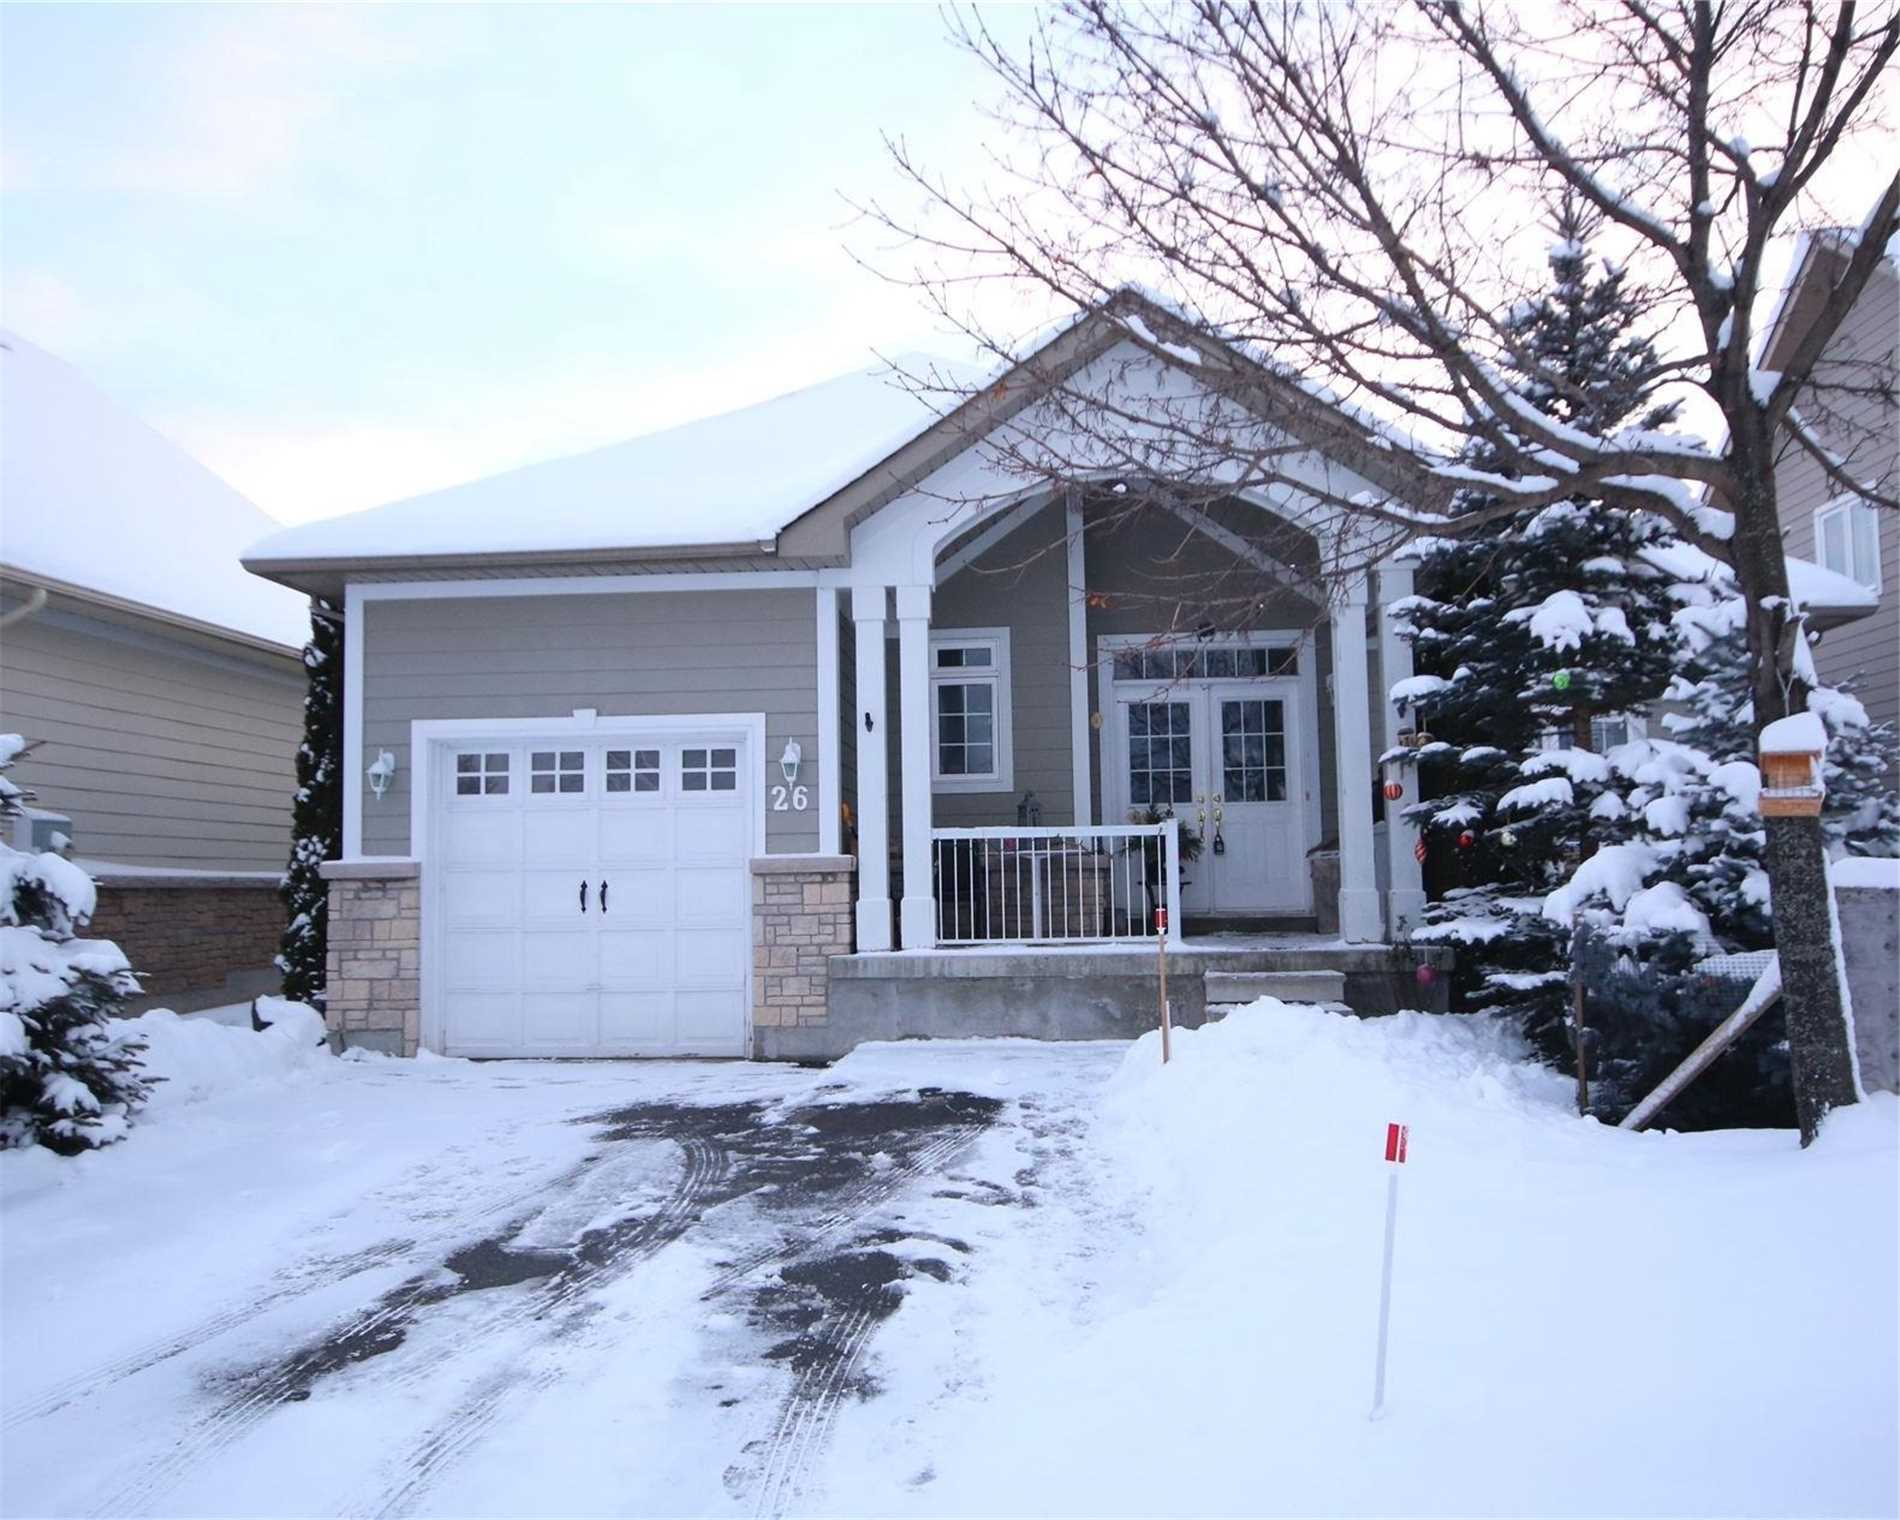 26 Clubhouse Dr, Collingwood Ontario, Canada